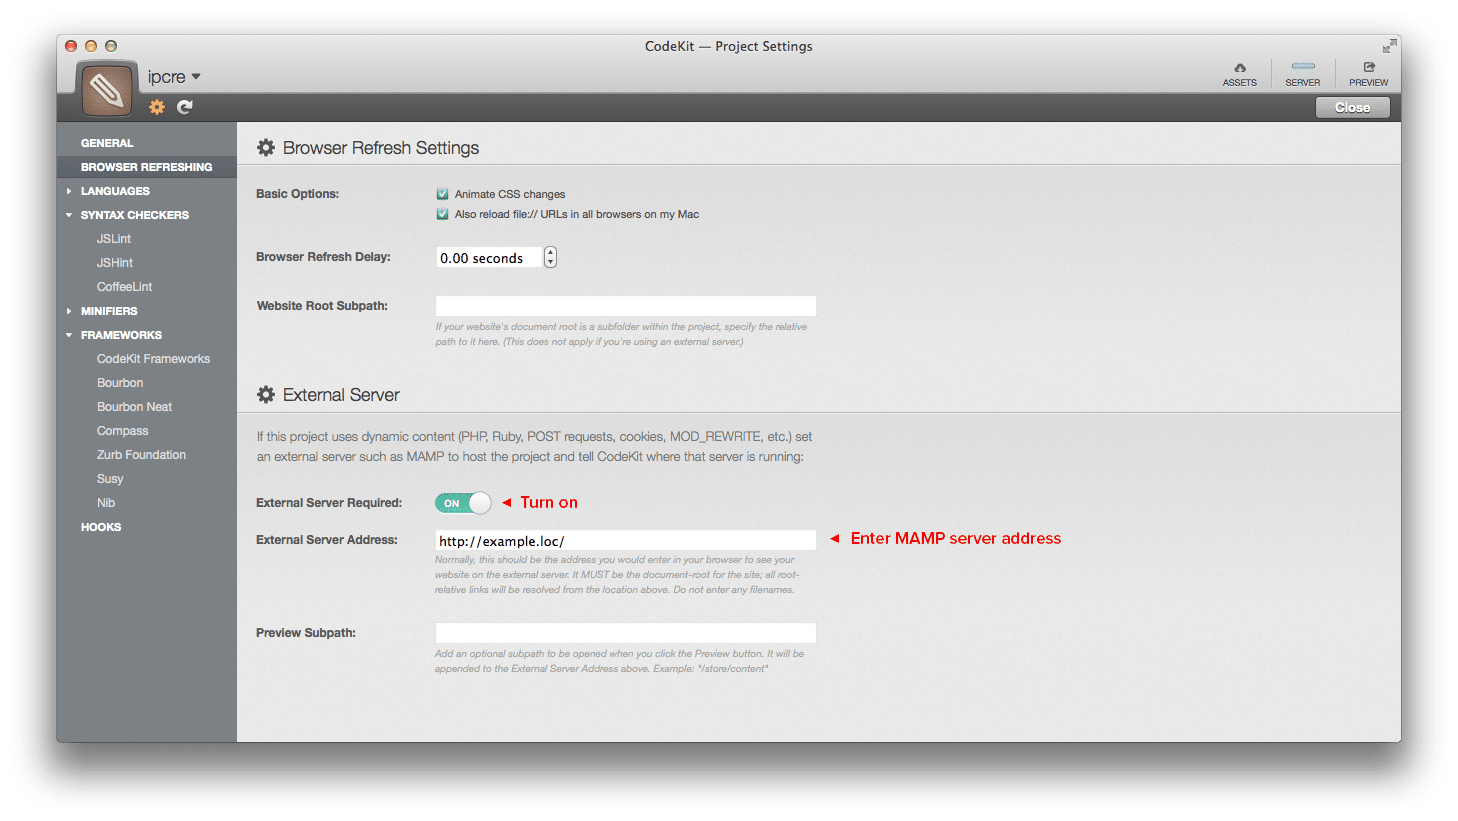 Codekit External Server Settings Panel